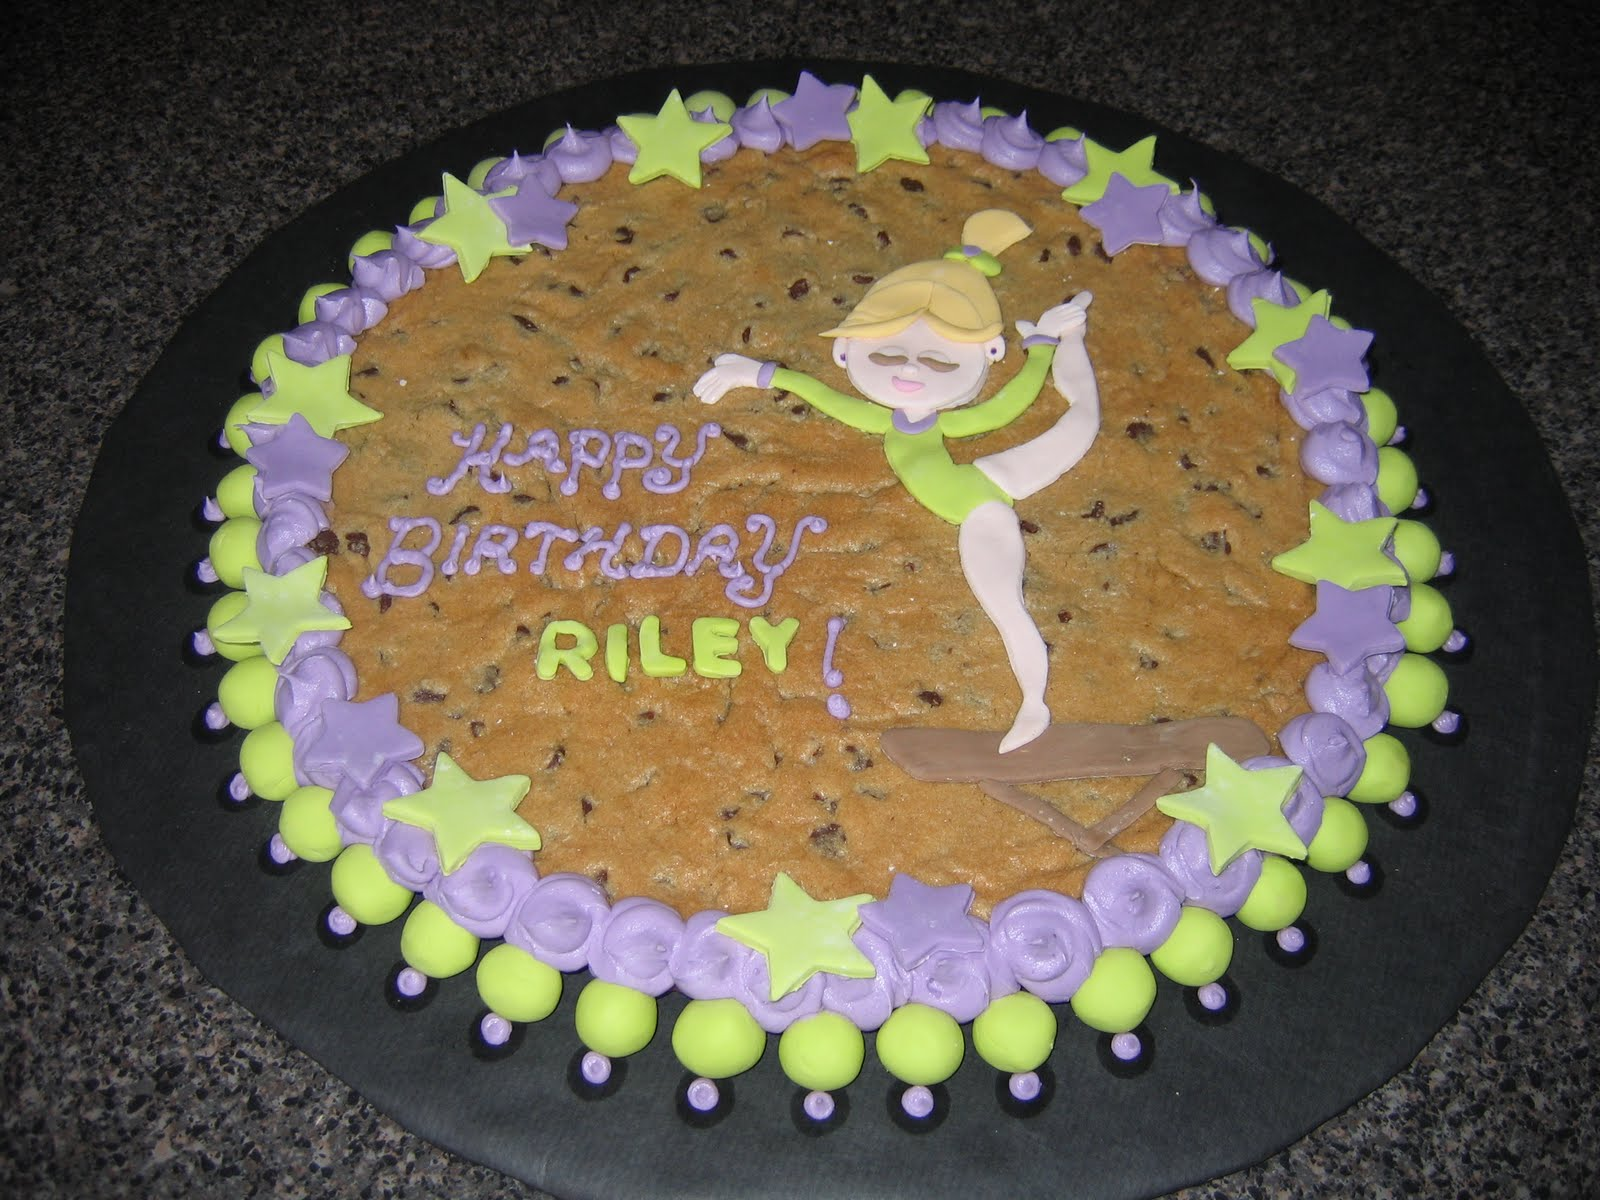 ... ..) DOES CAKE.: Giant Chocolate Chip Cookie Gymnast Birthday Cake